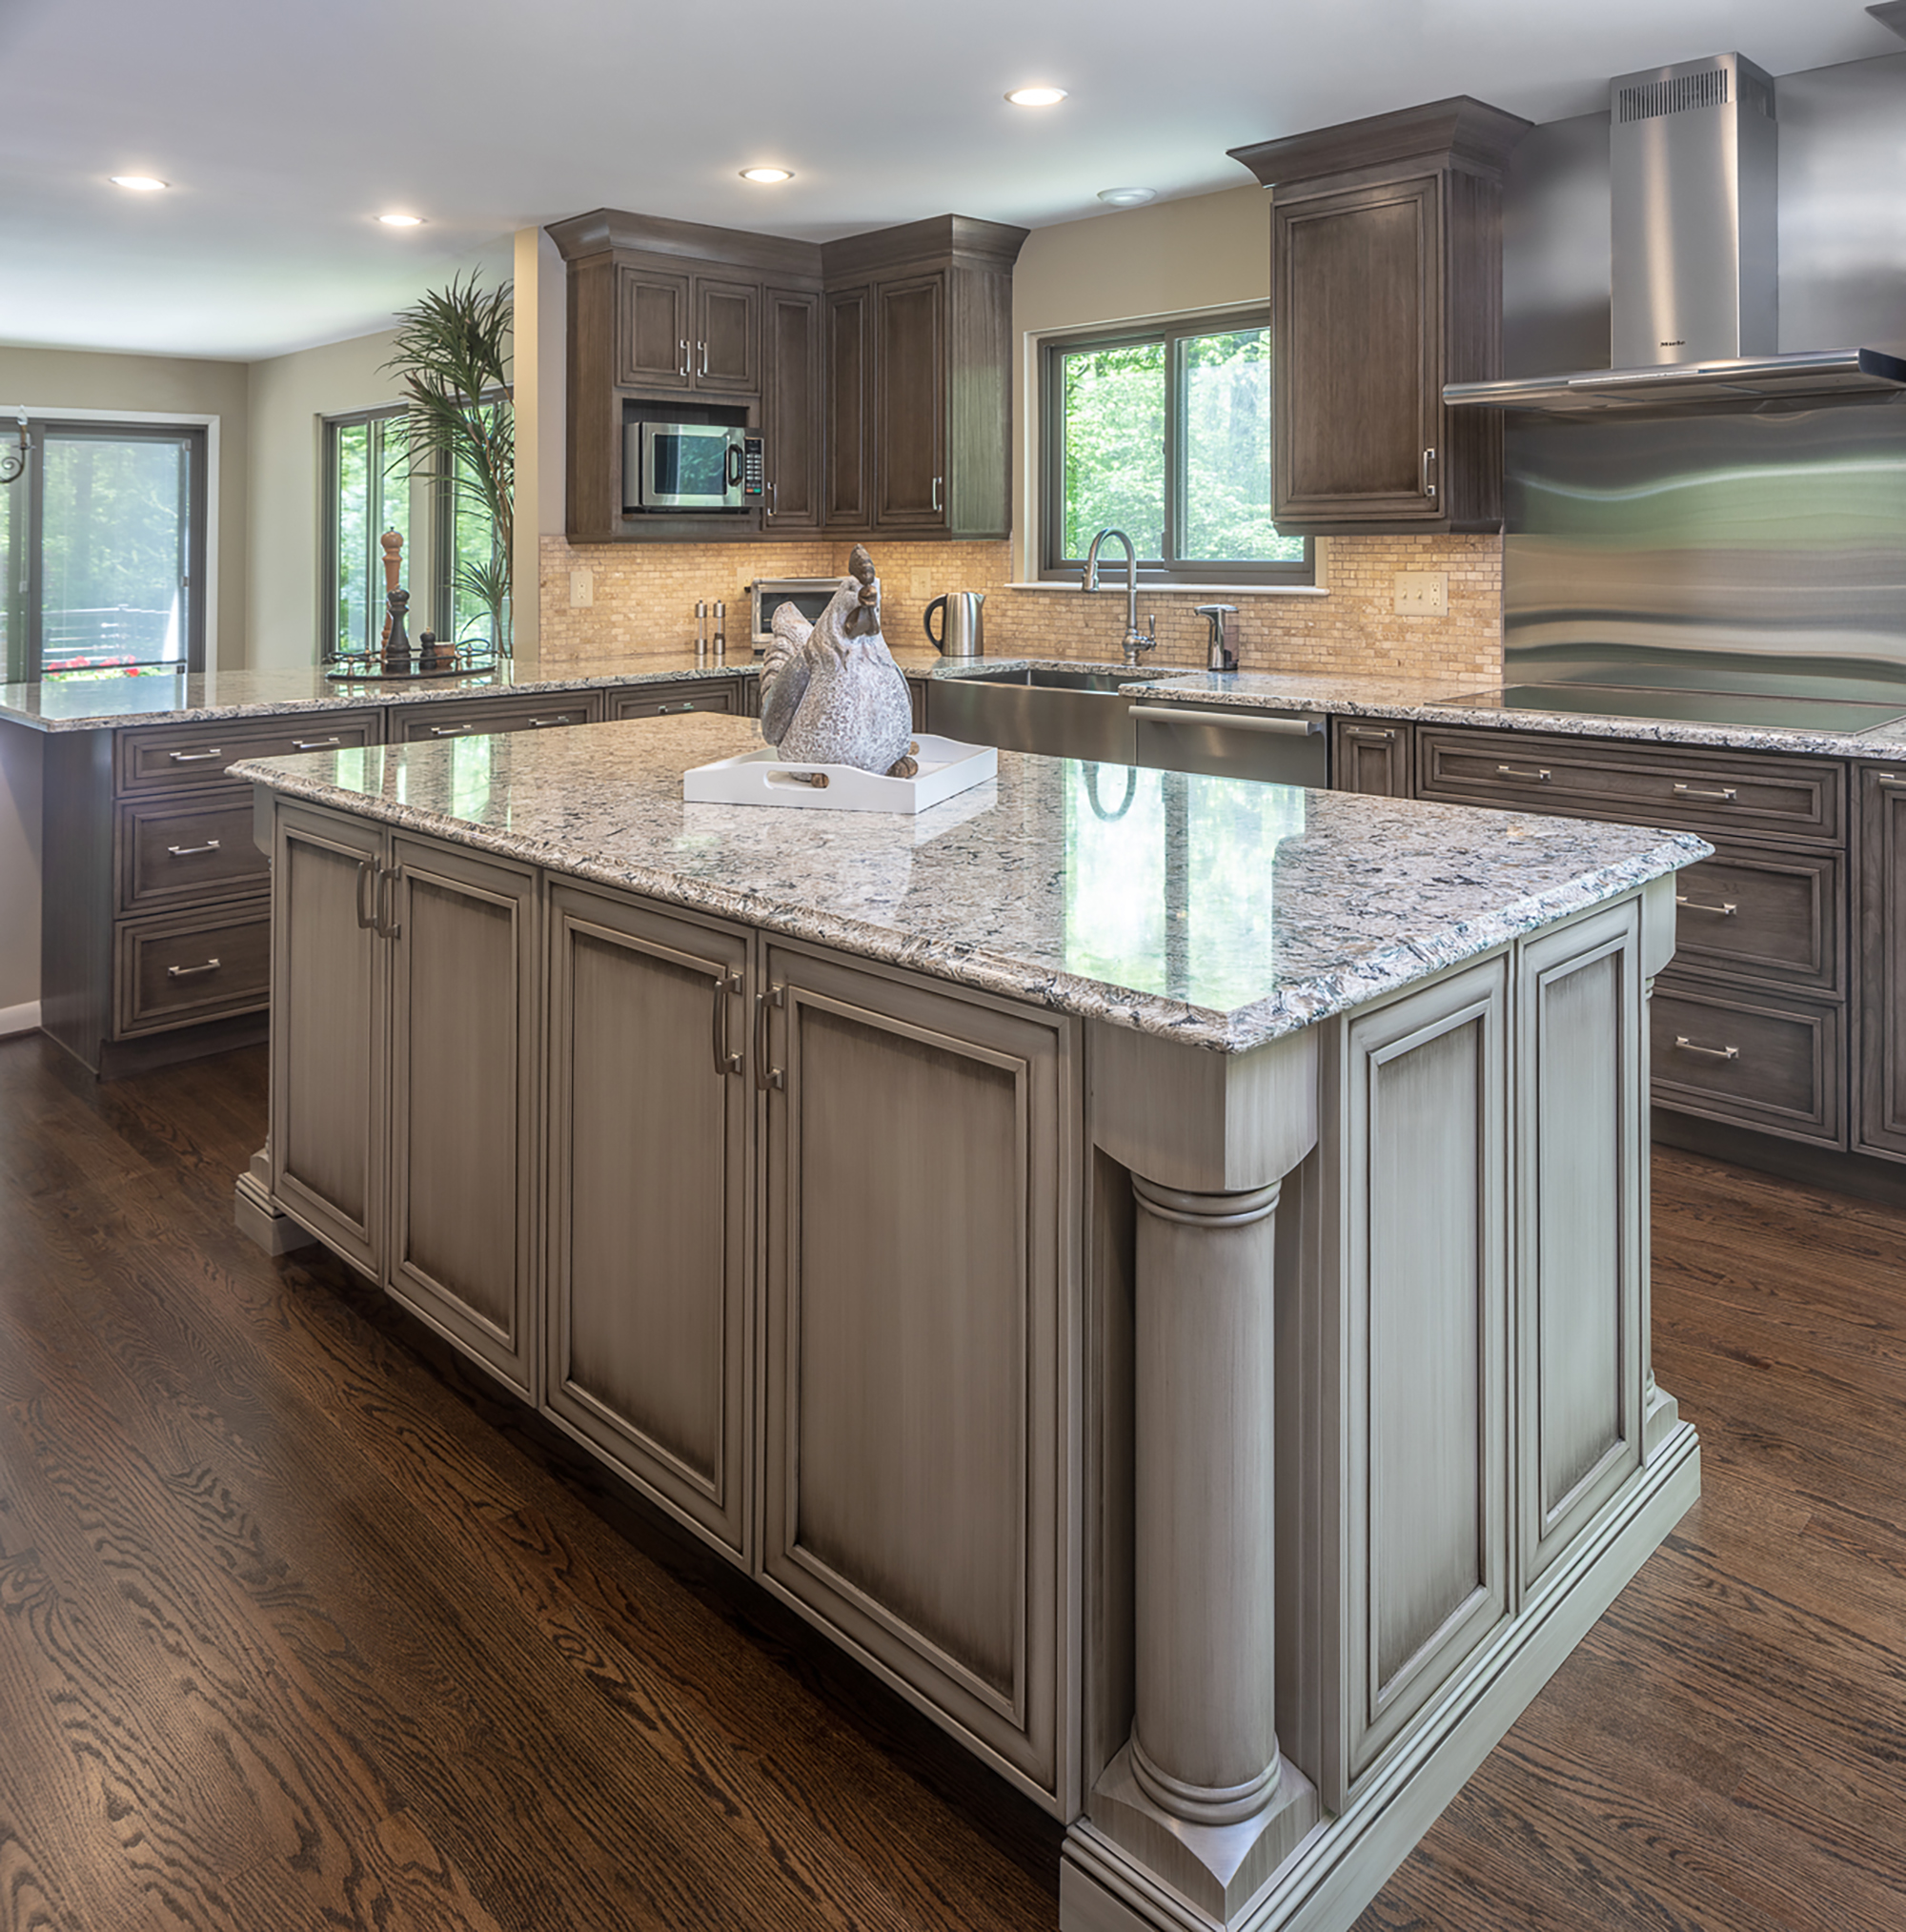 Building Your Dream Interior Kitchen With Convection Oven